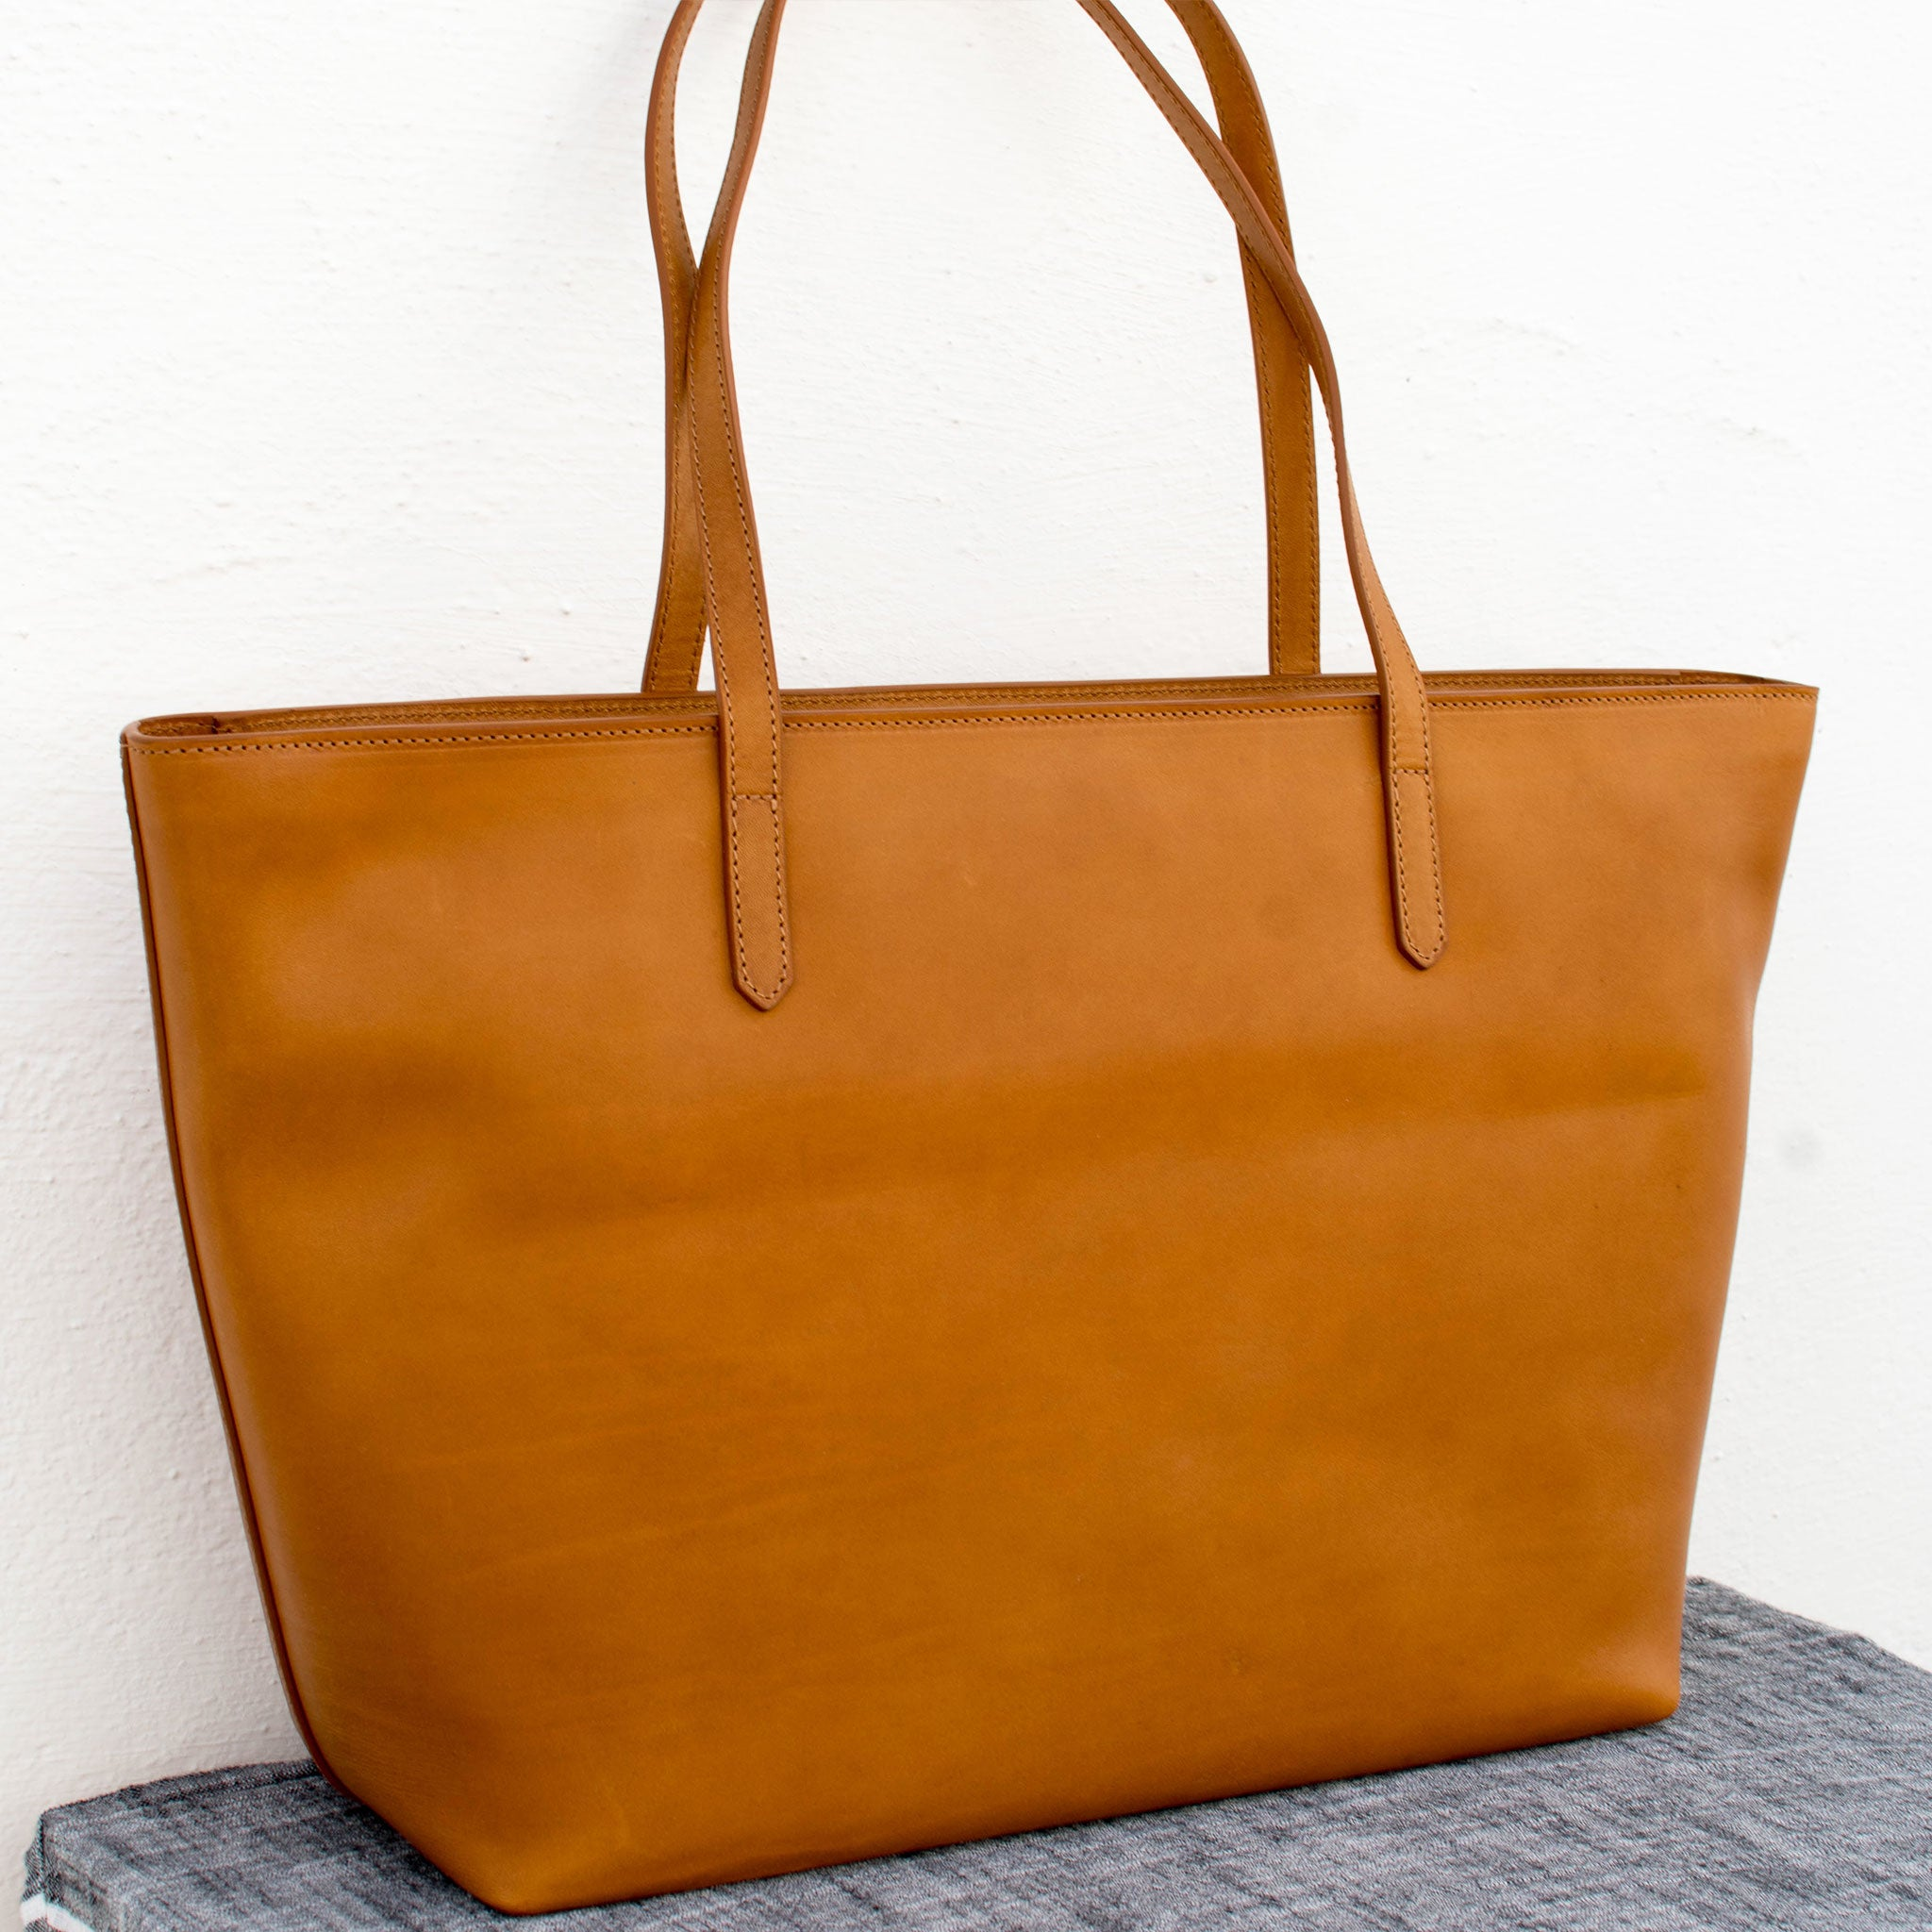 camel natural leather tote bag made in Italy on sale